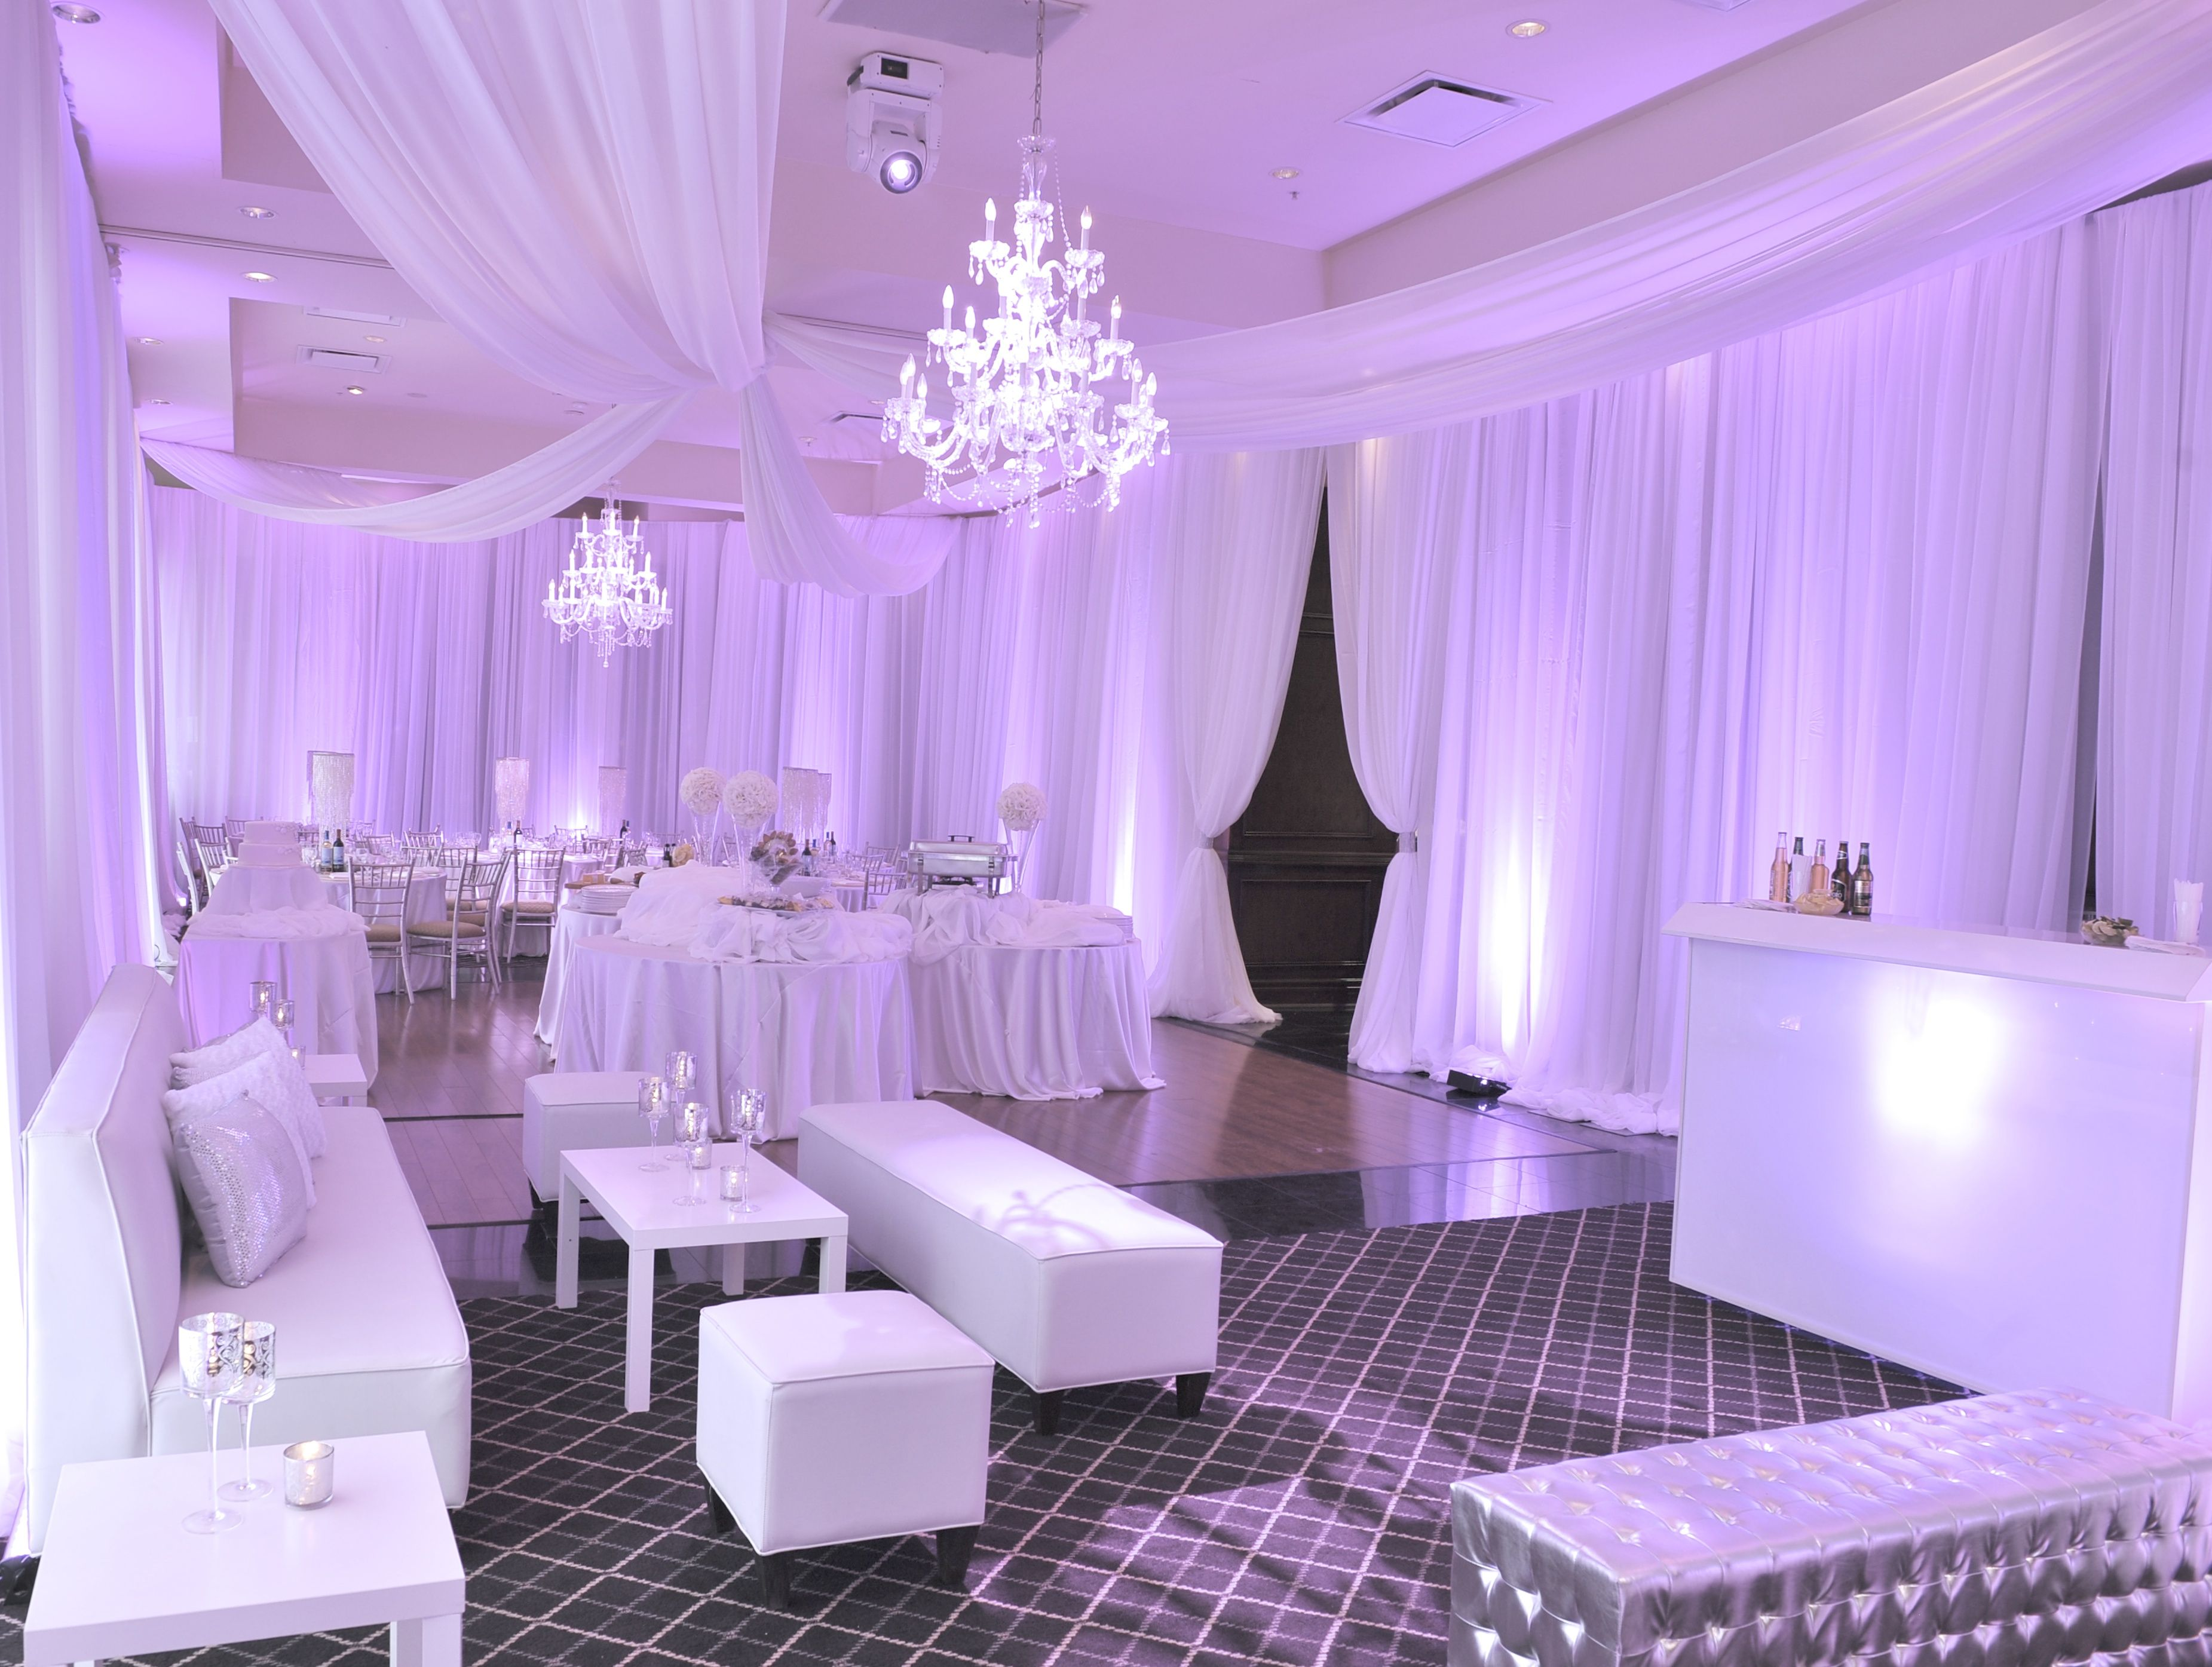 Paradise Banquet Hall Vaughan On Room Draping In 2019